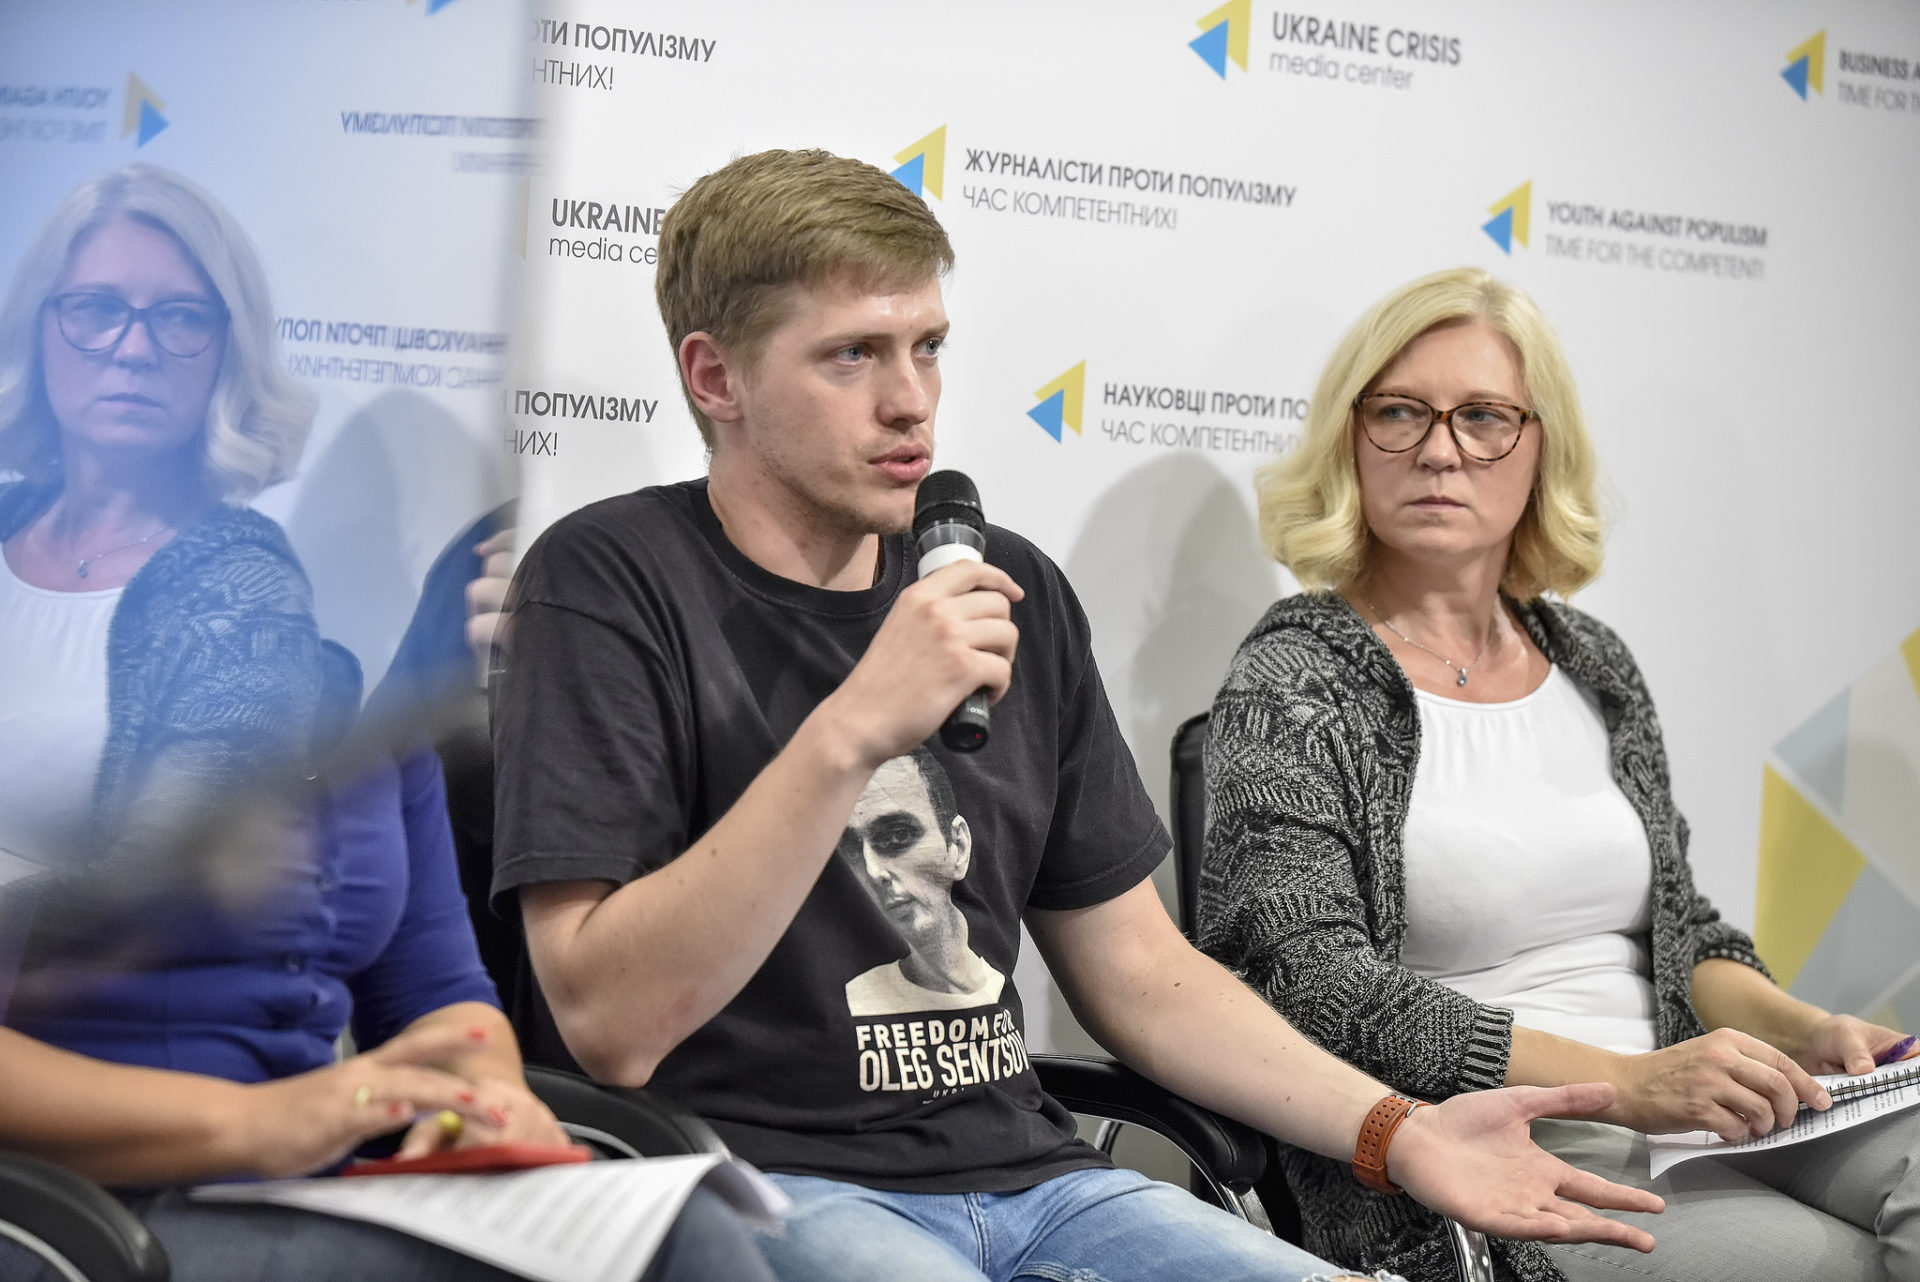 In September 2018, representatives of three Human Rights Houses visited Crimea on a human rights monitoring mission. Mission members Kyrylo Iyekimov (Educational Human Rights House Chernihiv) and Tatsiana Reviaka are pictured here at a press conference in Kyiv, presenting their findings.